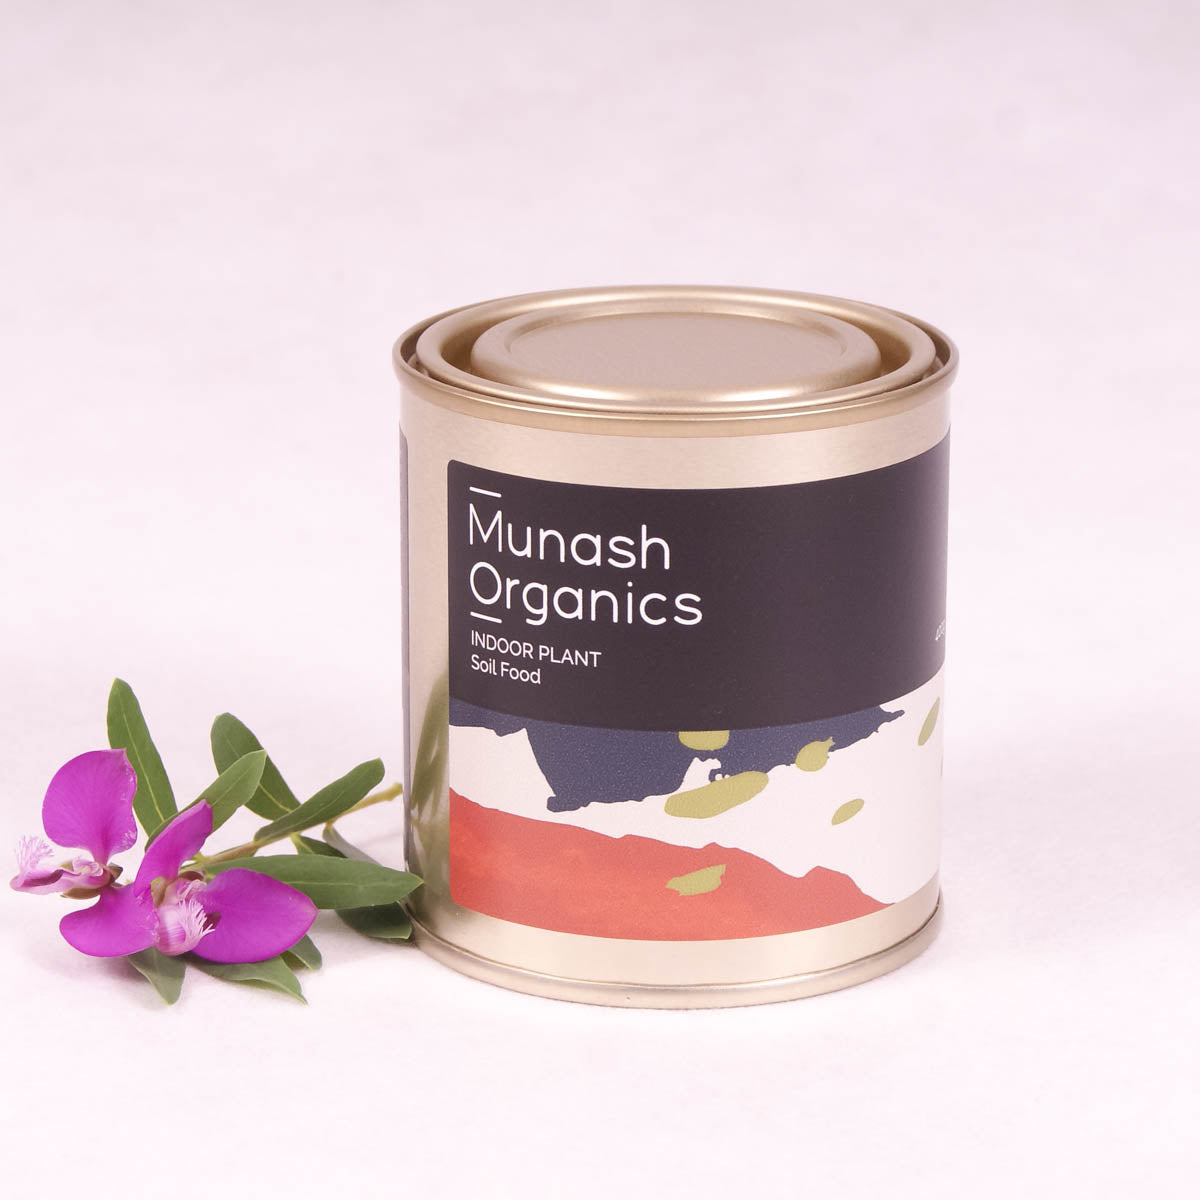 Indoor Plant Soil Food By Munash Organics - Plant Food - Throw Some Seeds - Australian gardening gifts and eco products online!